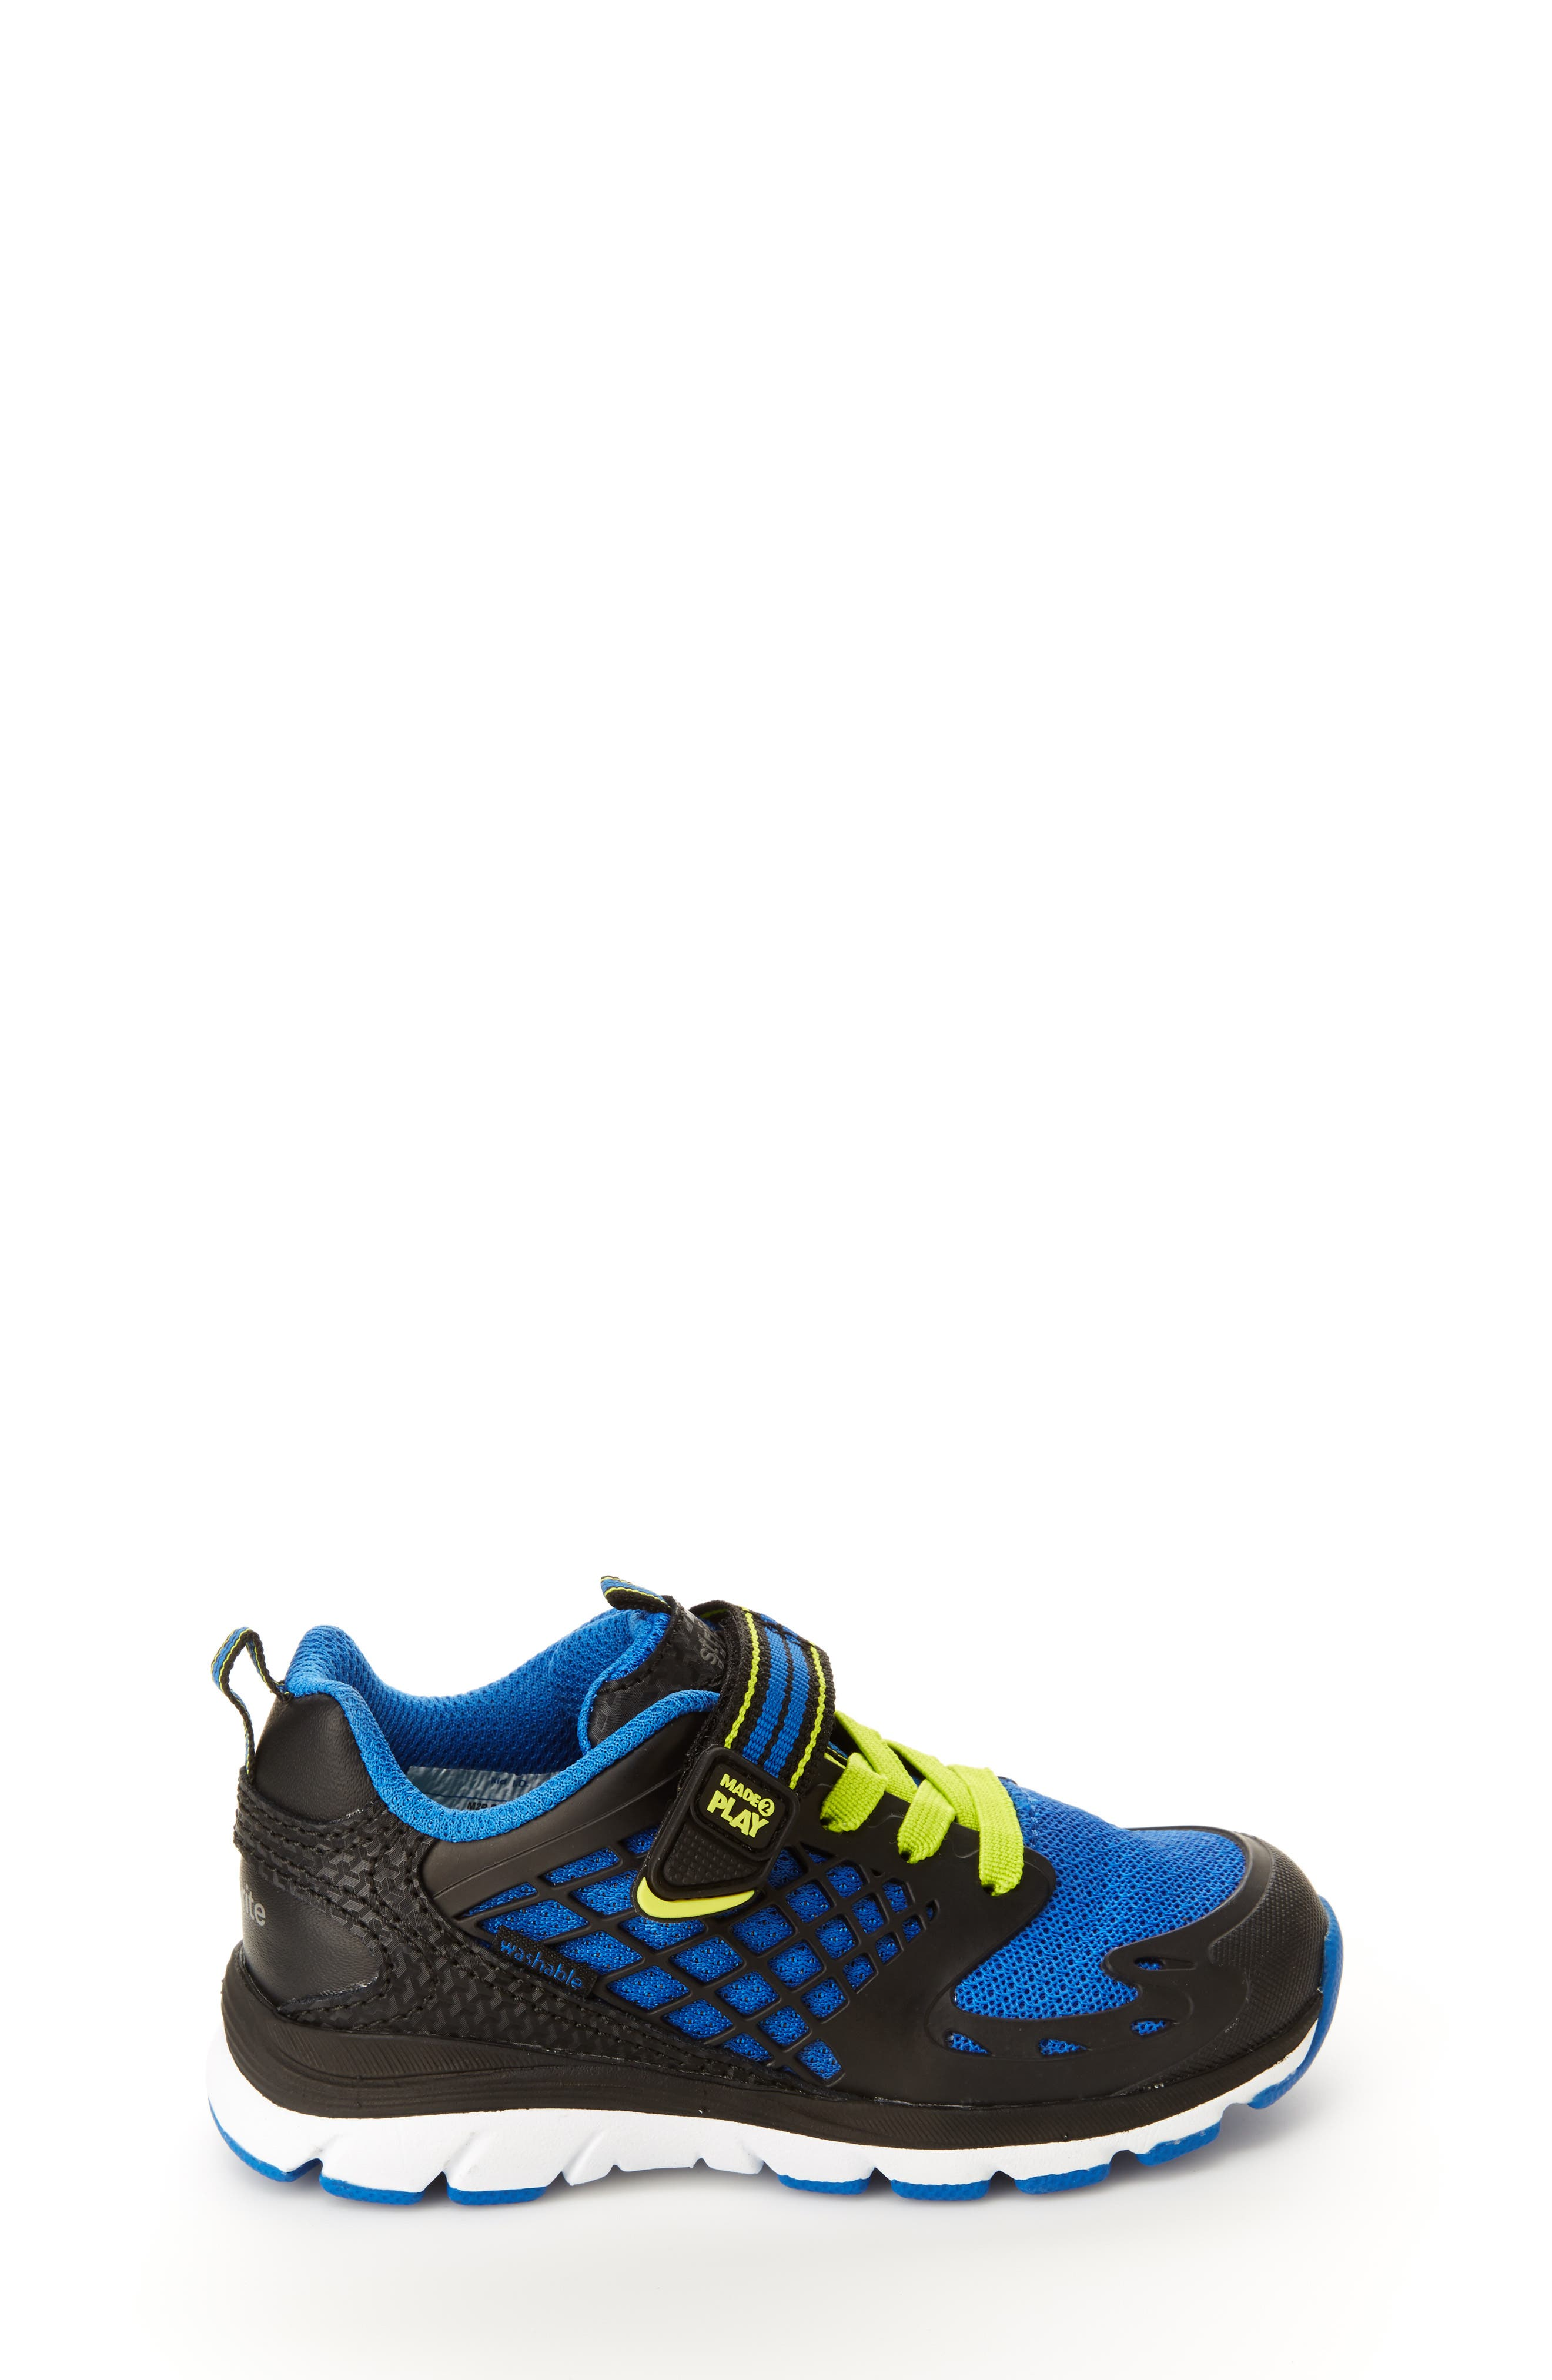 Made 2 Play Breccen Sneaker,                             Alternate thumbnail 2, color,                             BLACK/ LIME